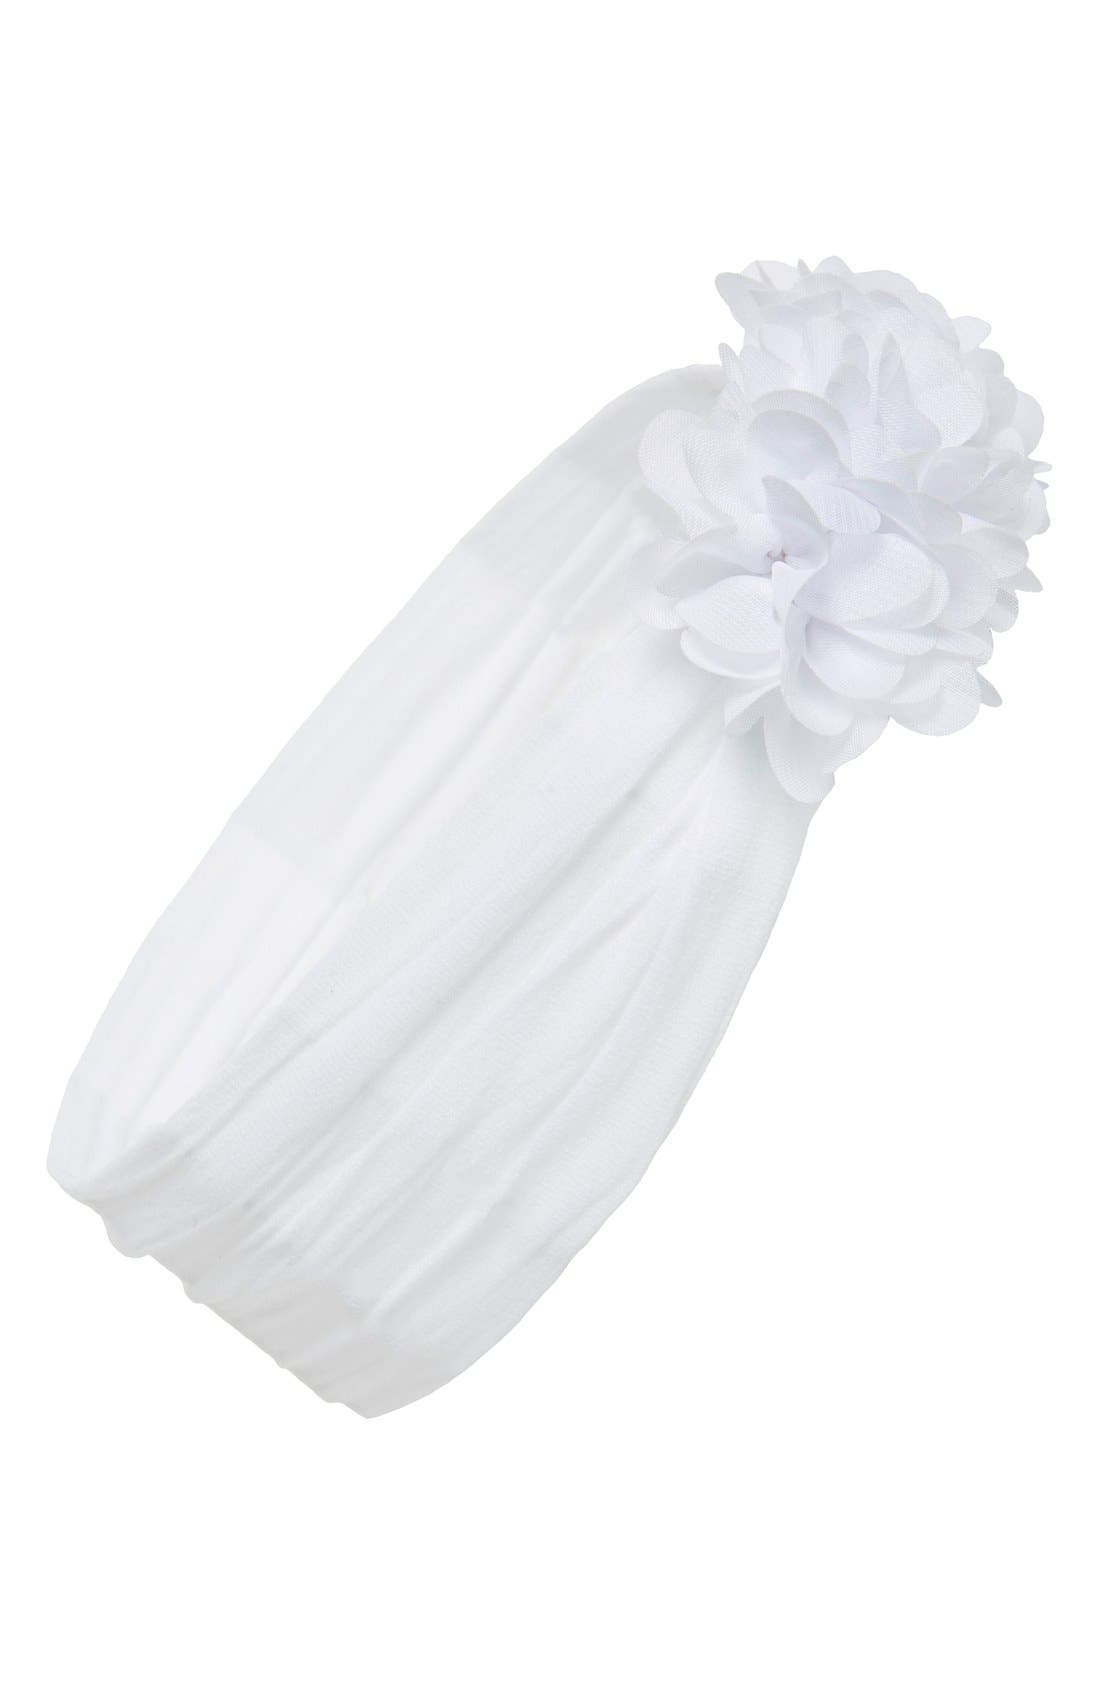 Chiffon Ruffle Headband,                         Main,                         color, WHITE